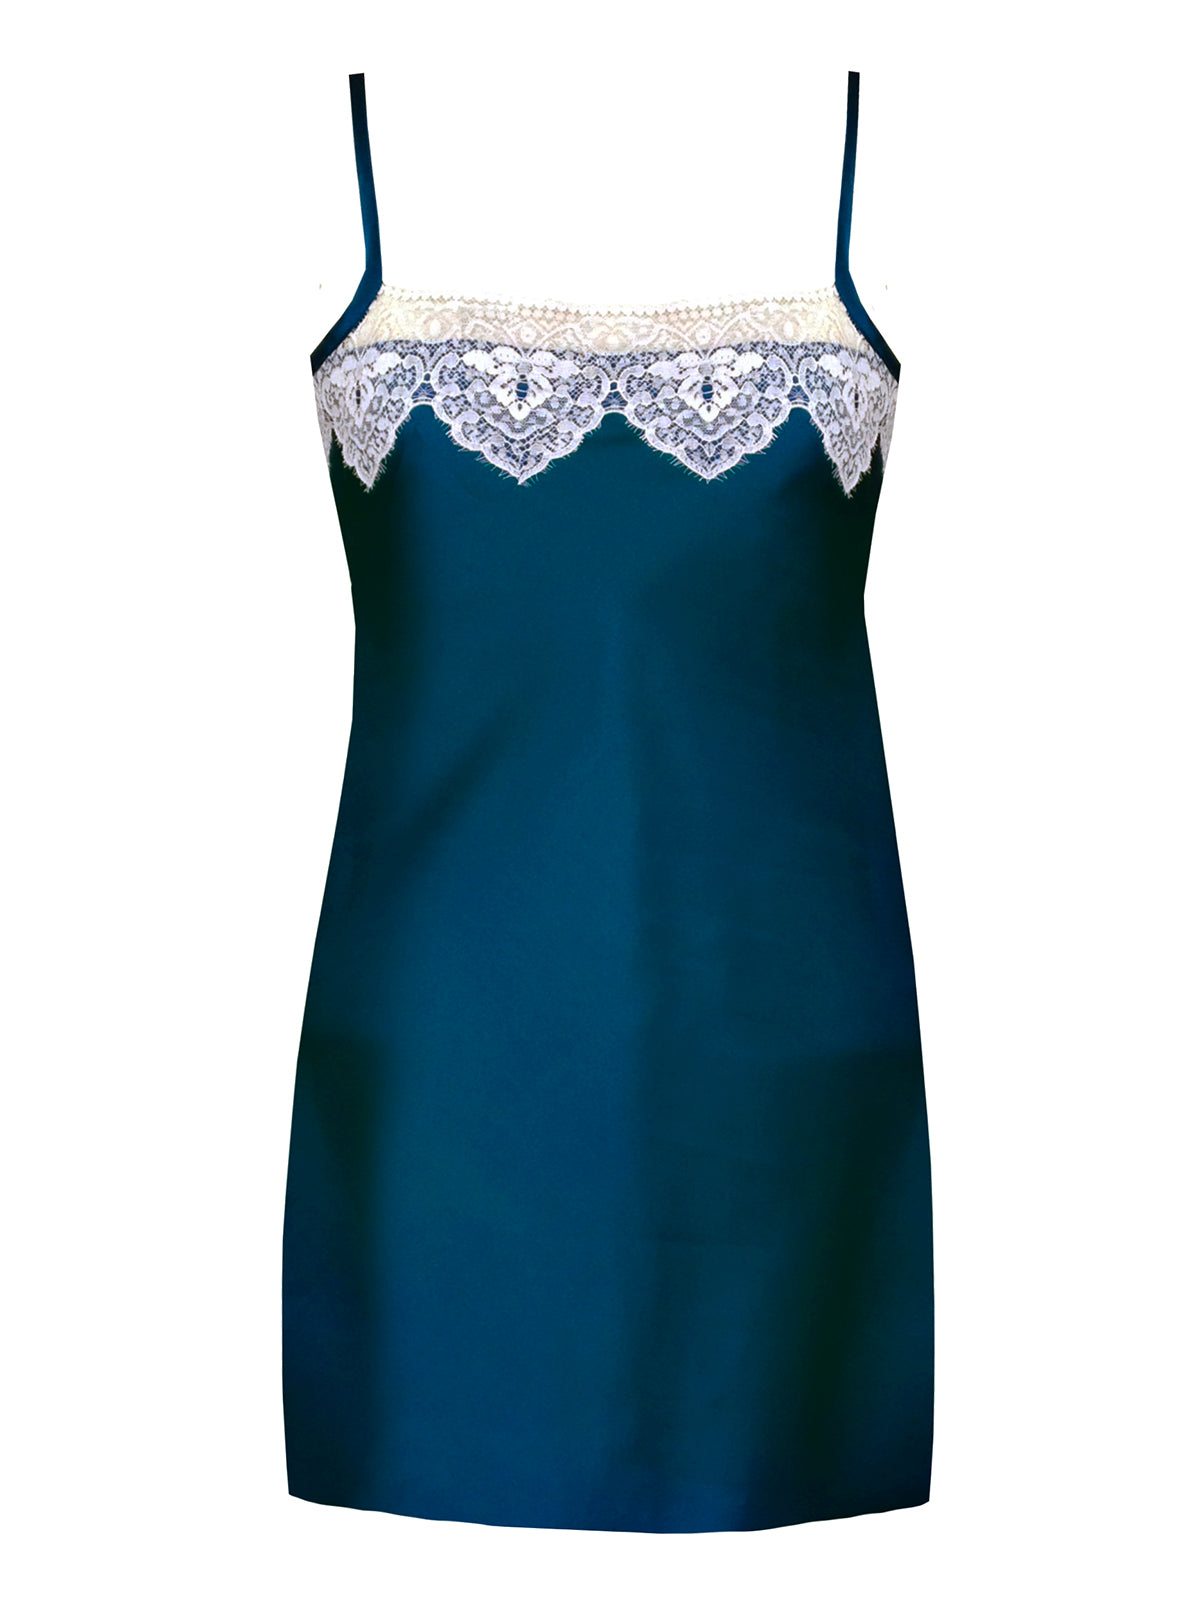 Layla Peacock Blue Silk Slip By Ayten Gasson